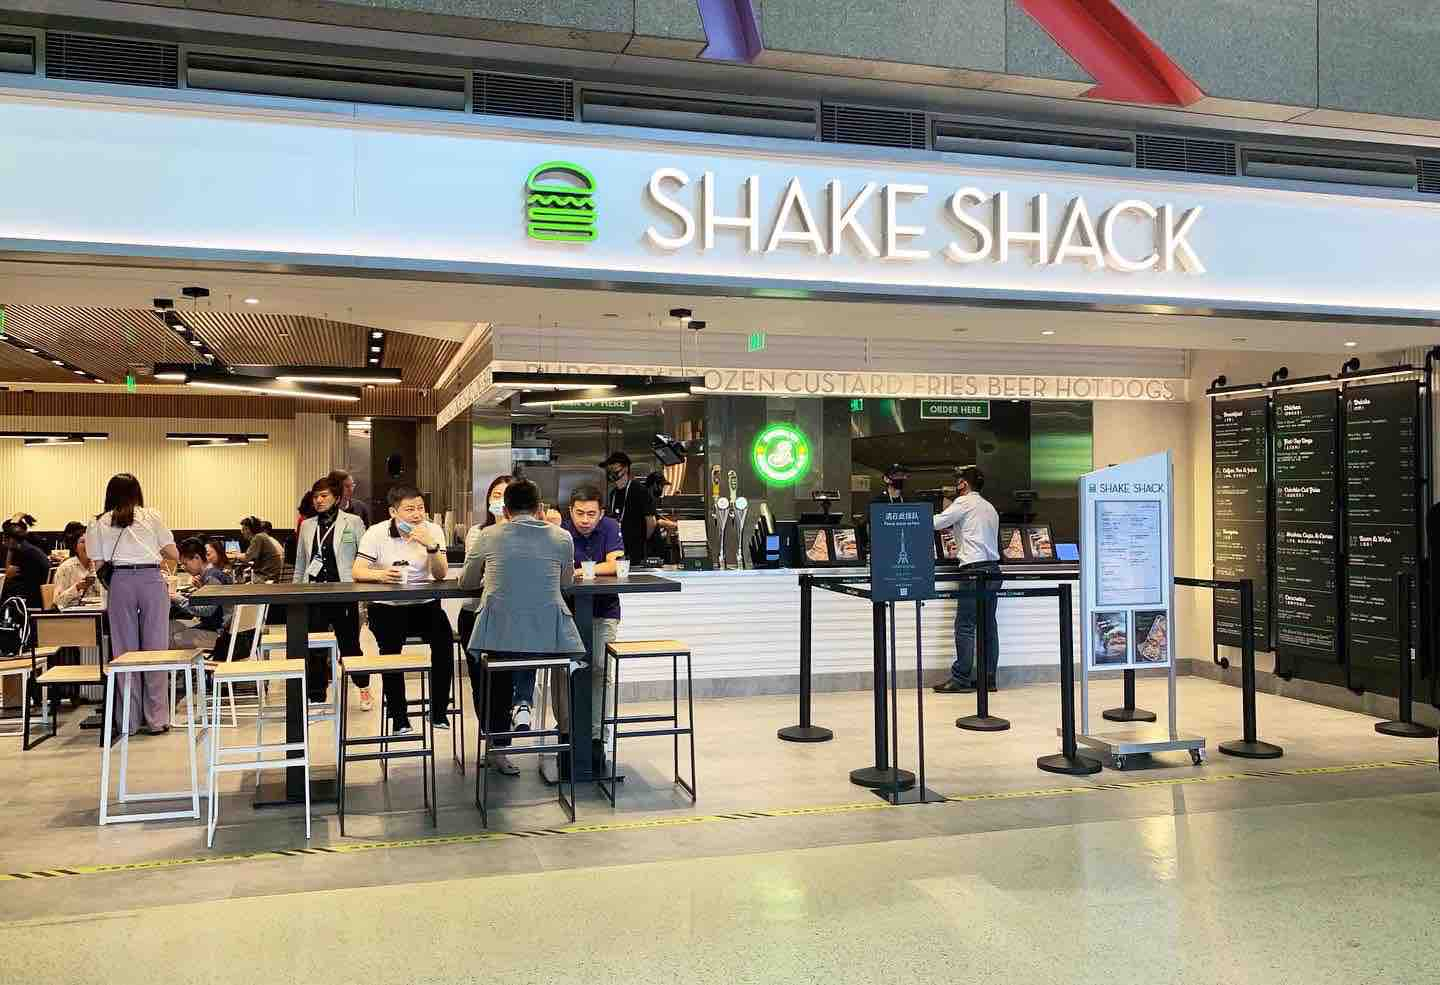 No Criminality by Shake Shack After Policemen Get Sick From Drink